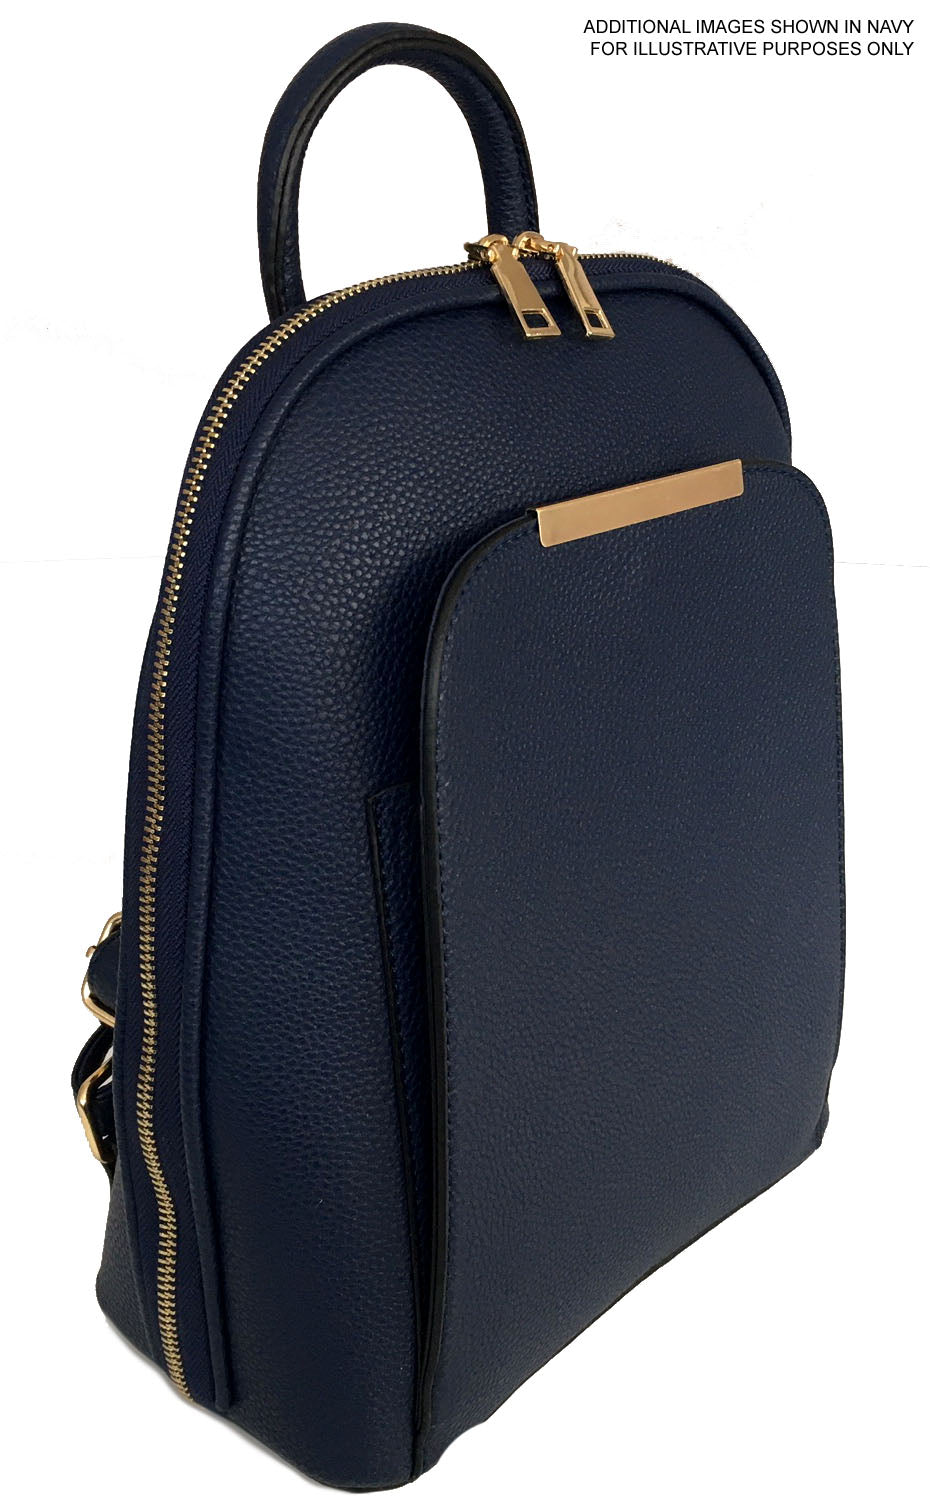 A-SHU SMALL MULTI COMPARTMENT CROSS BODY BACKPACK WITH TOP HANDLE - MUSTARD YELLOW - A-SHU.CO.UK